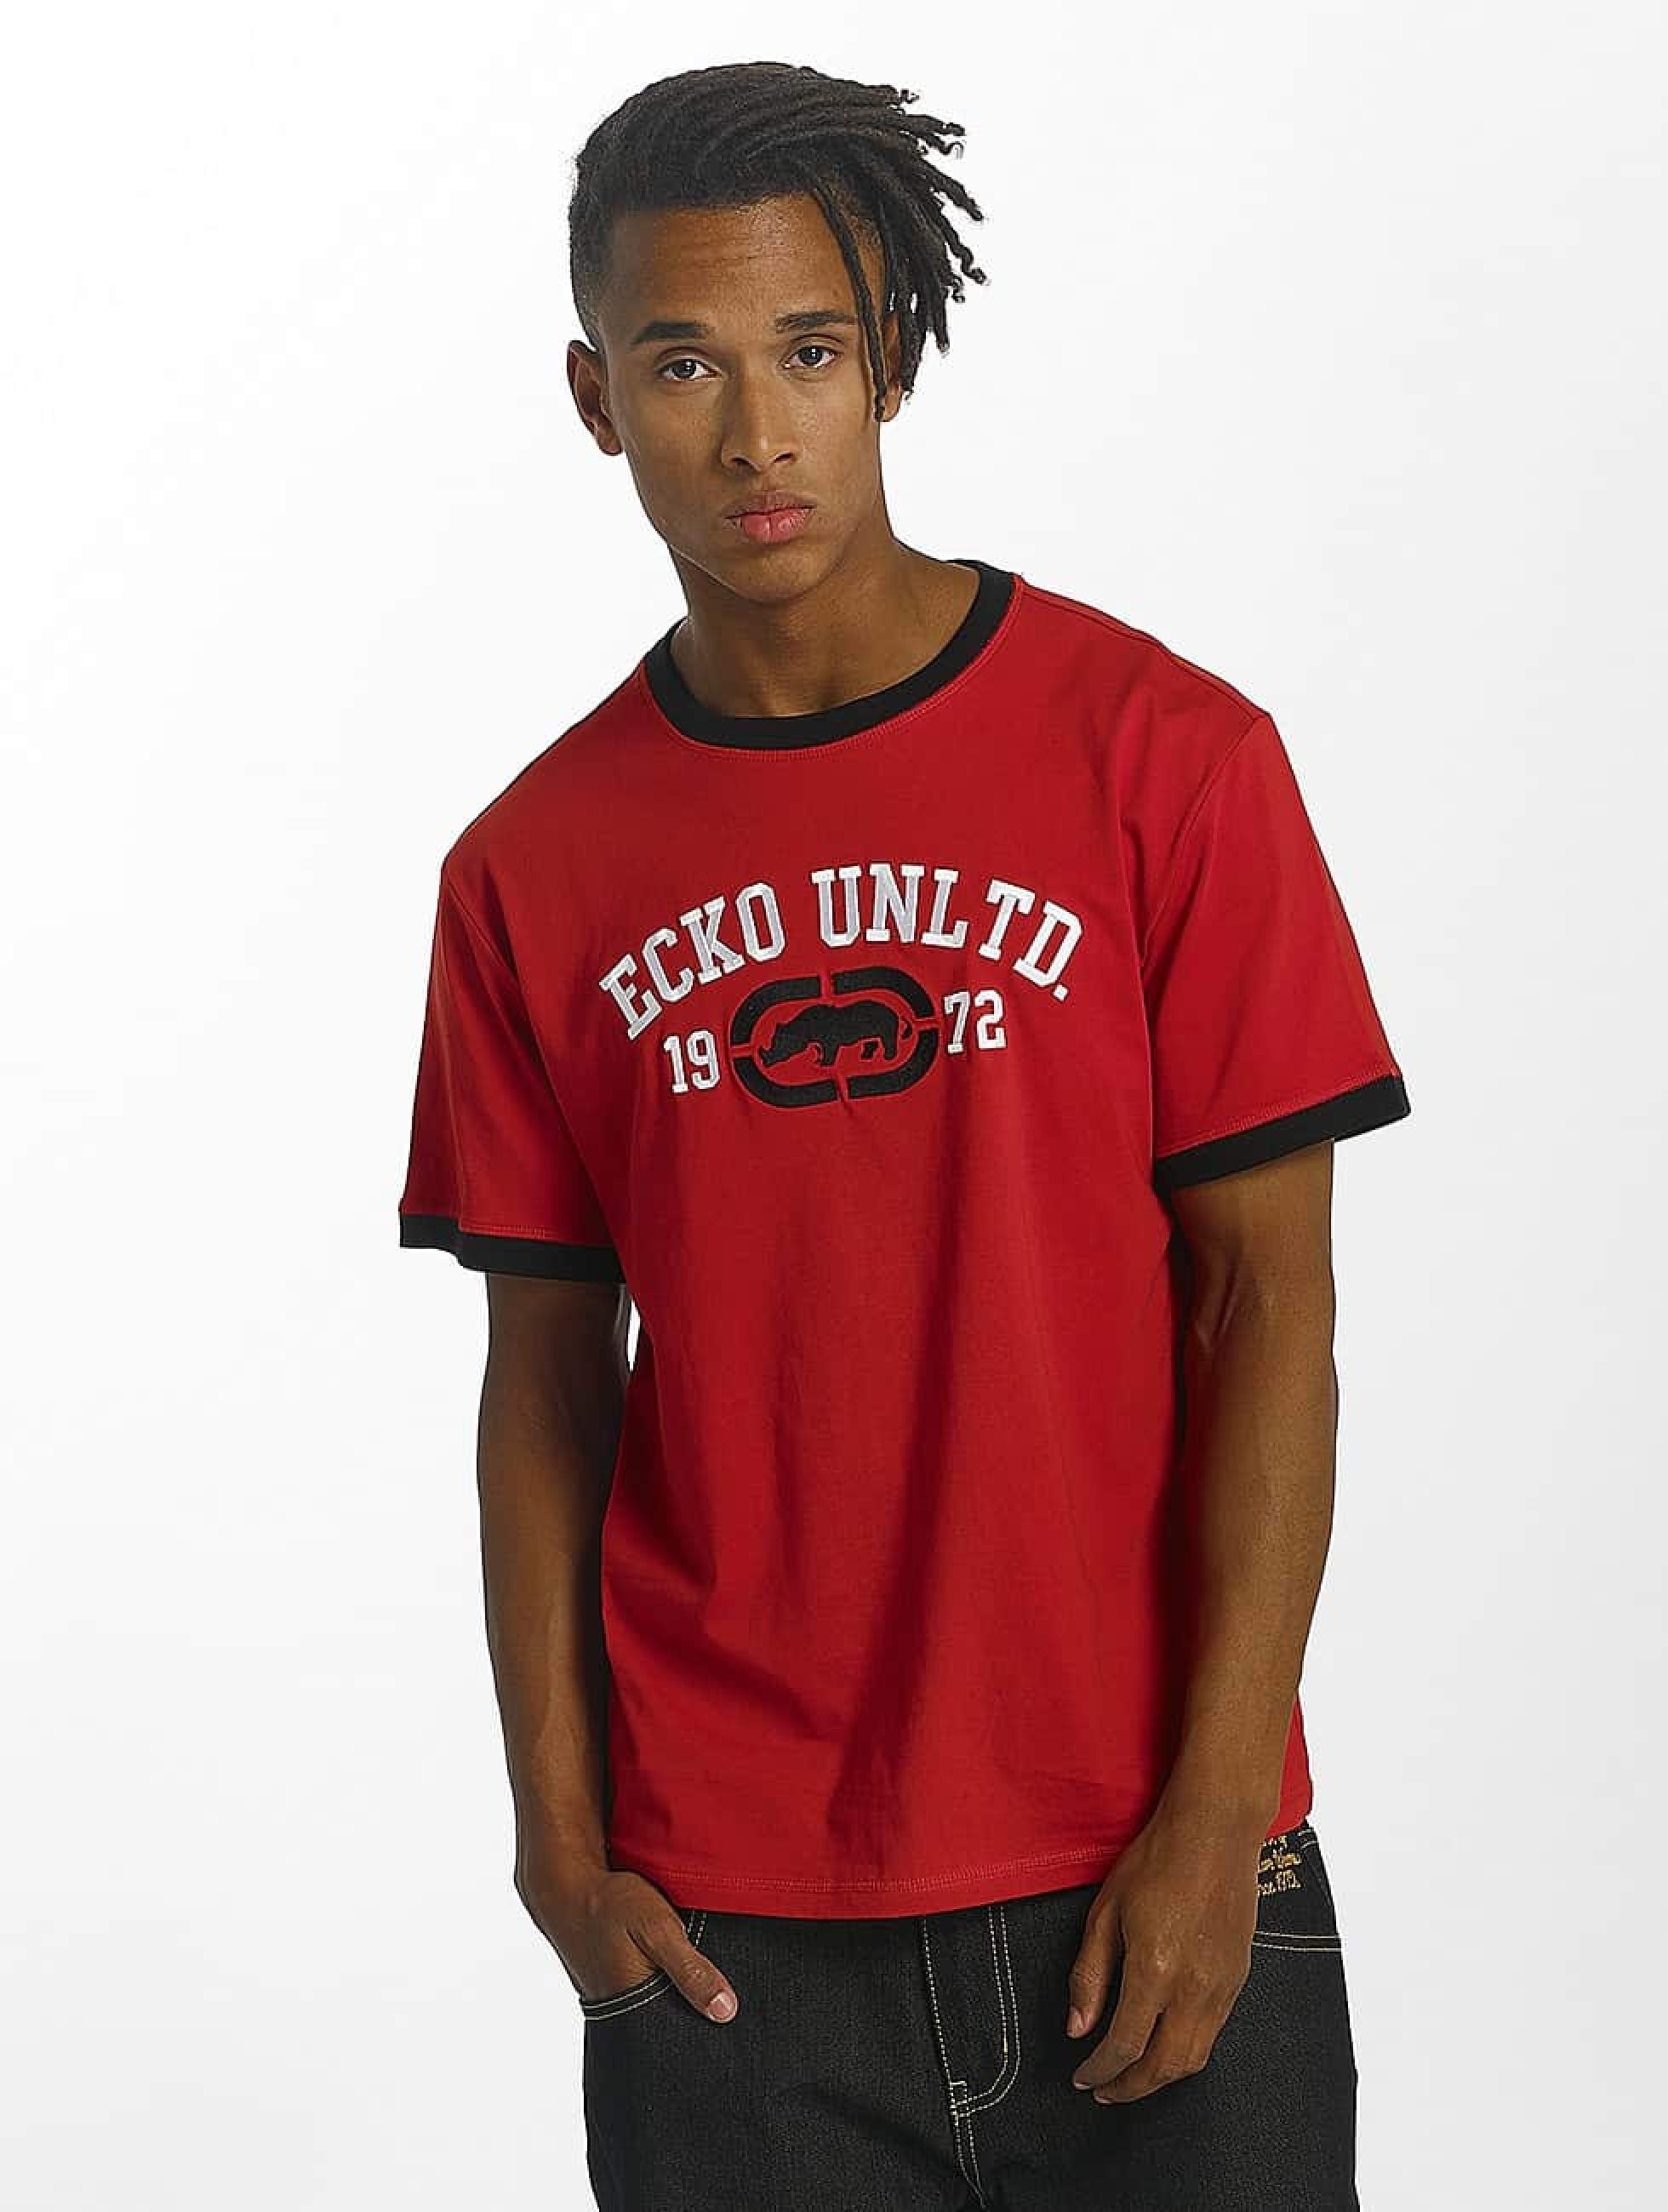 Ecko Unltd. / T-Shirt First Avenue in red XL